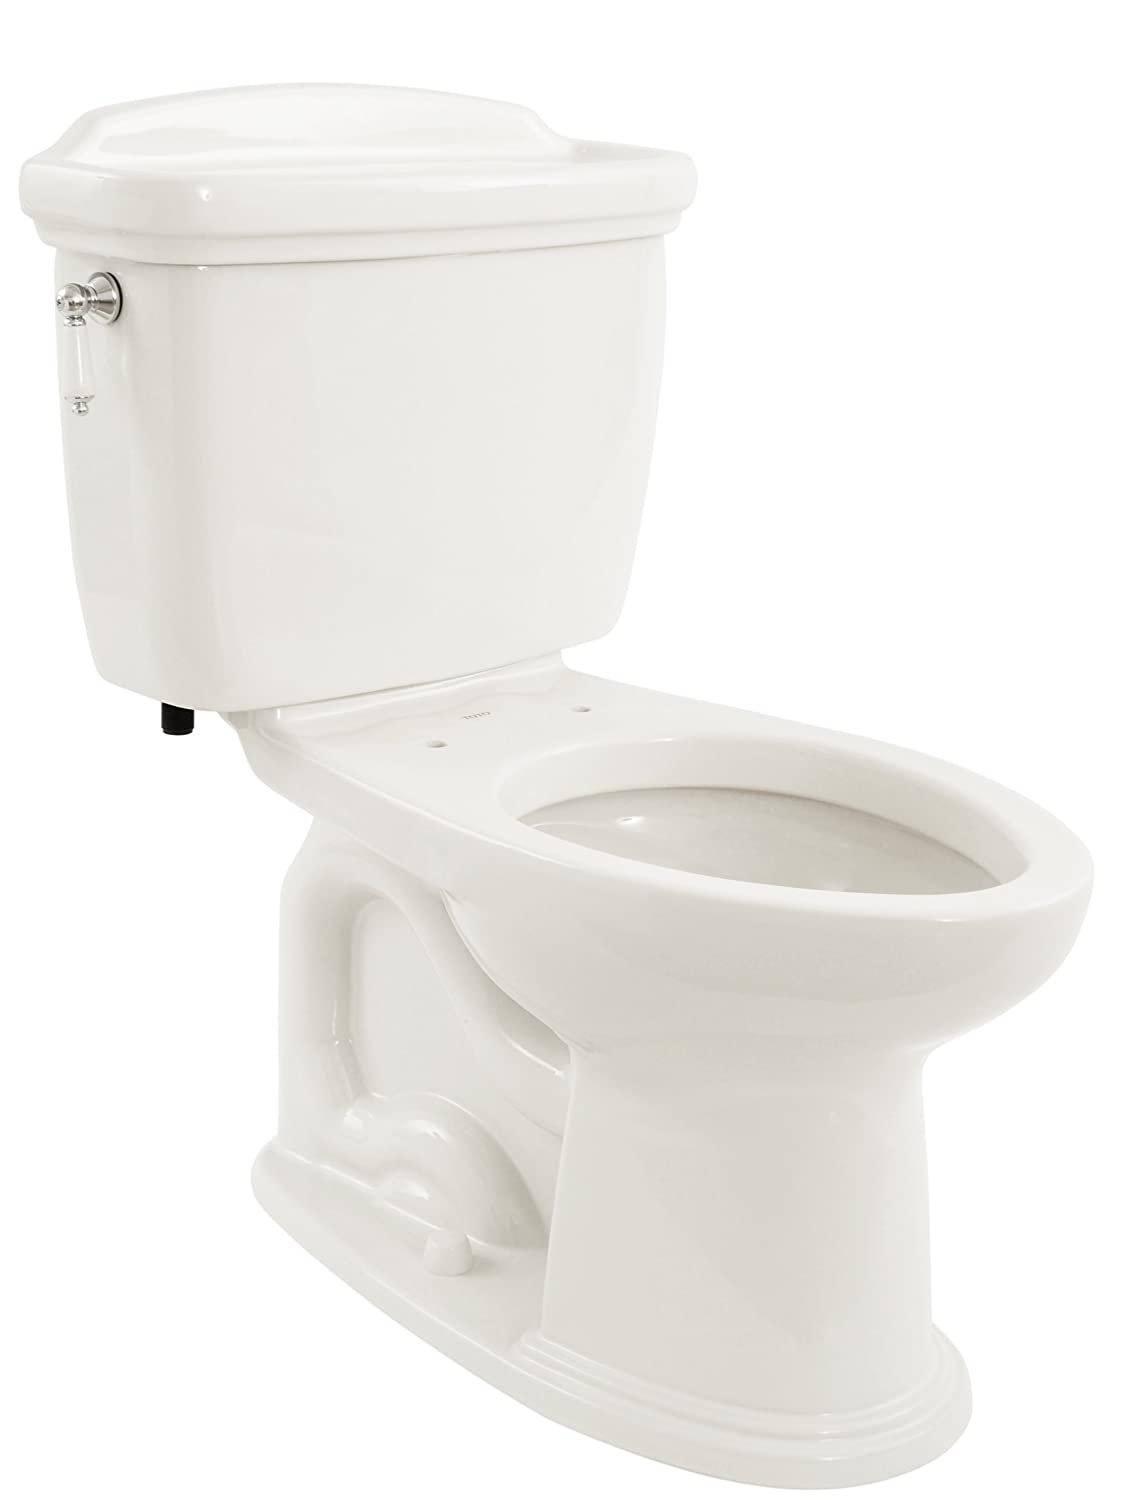 TOTO CSTSF Dartmouth Piece Elongated Toilet Cotton White - Elongated bowl toilet dimensions